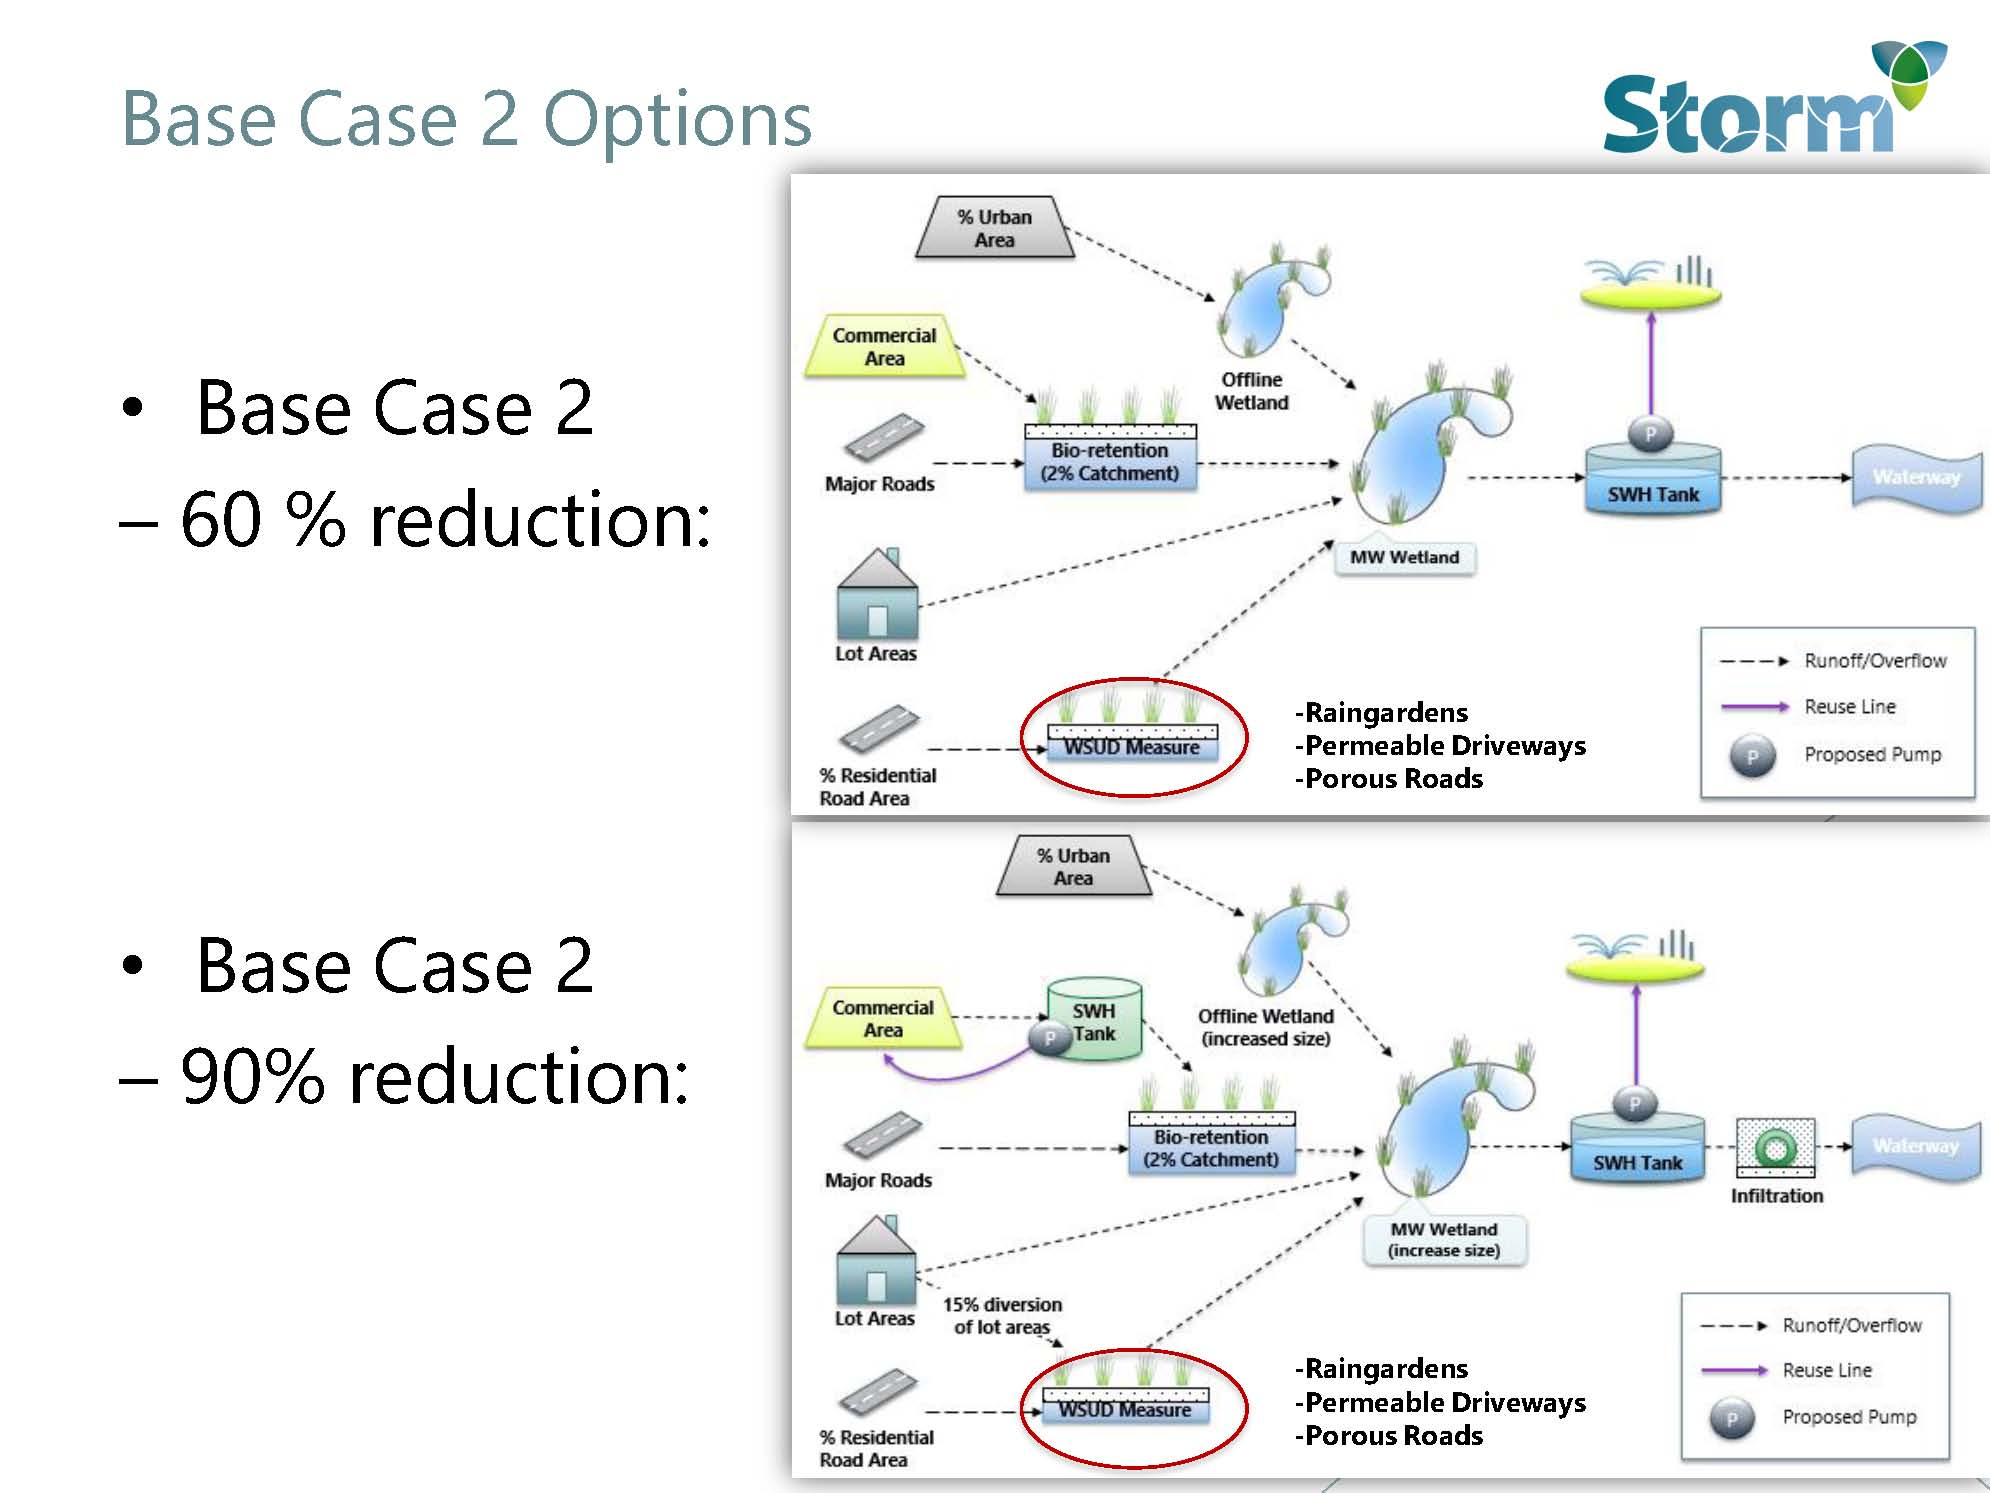 rod-wiese_base-case-2-options